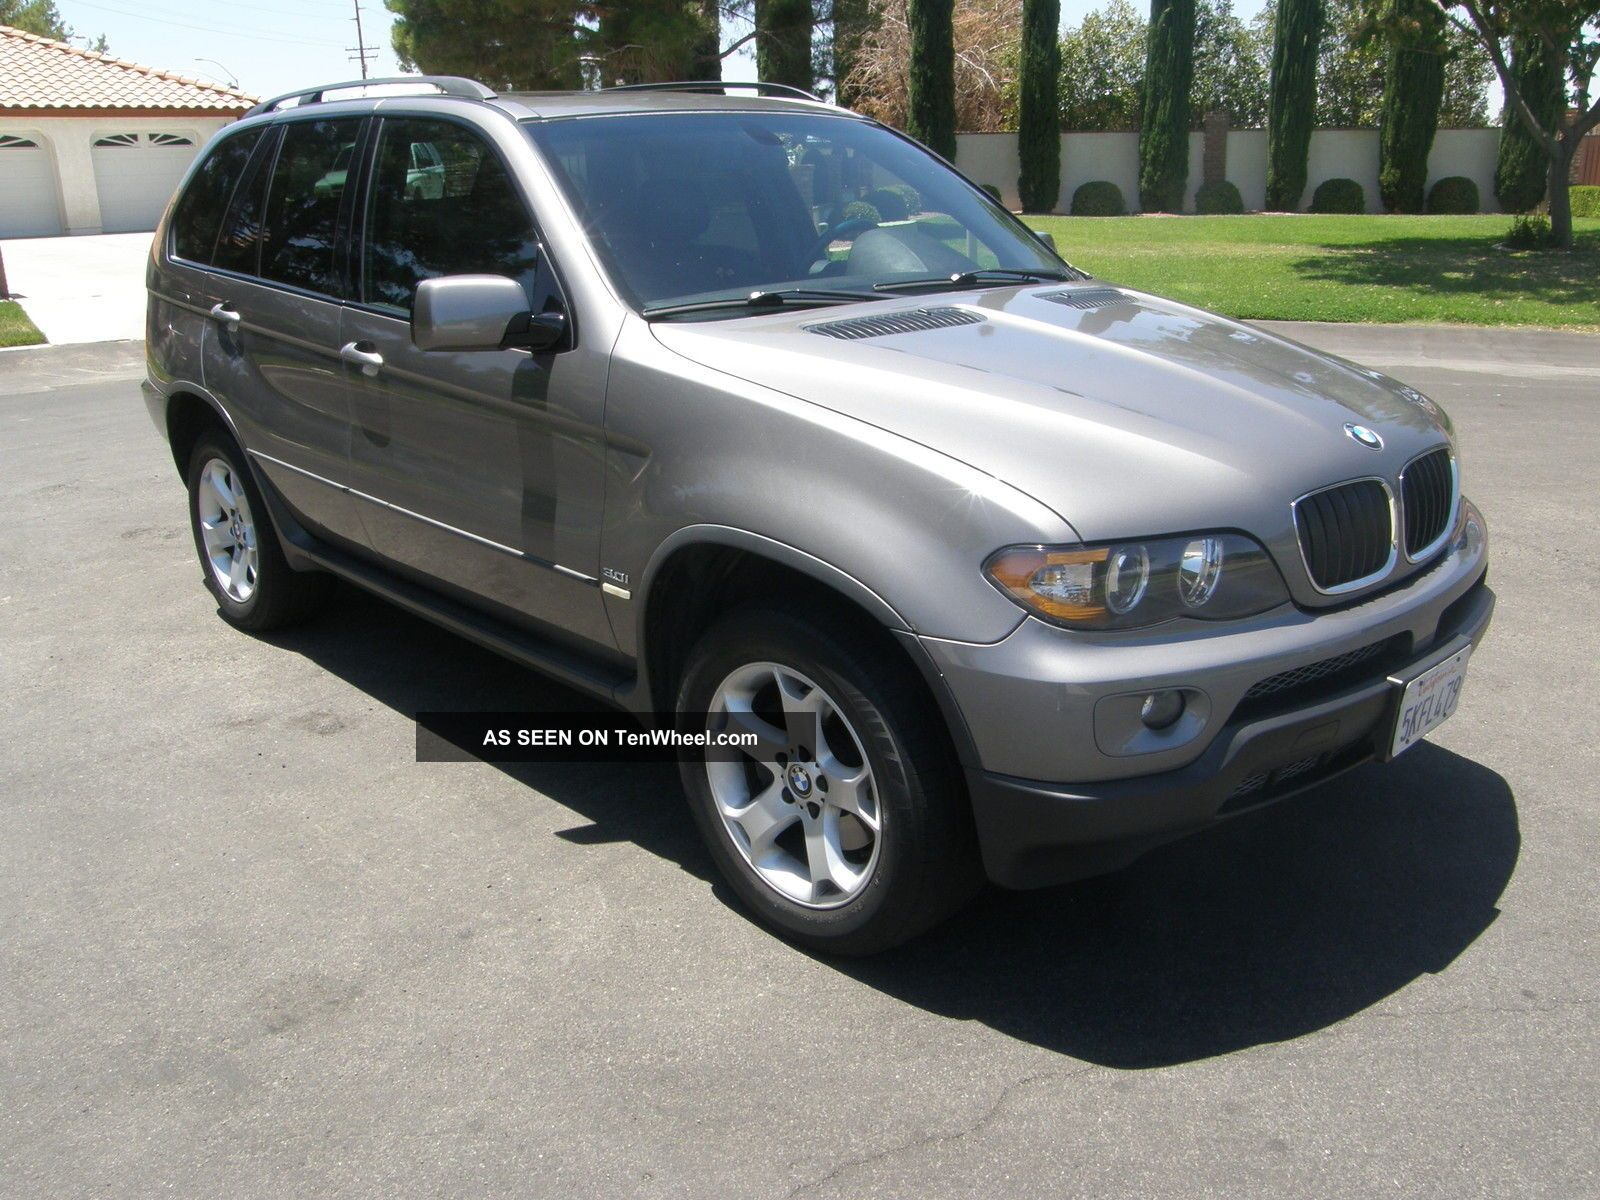 2004 bmw x5 sport 3 0 non smoker garage kept. Black Bedroom Furniture Sets. Home Design Ideas